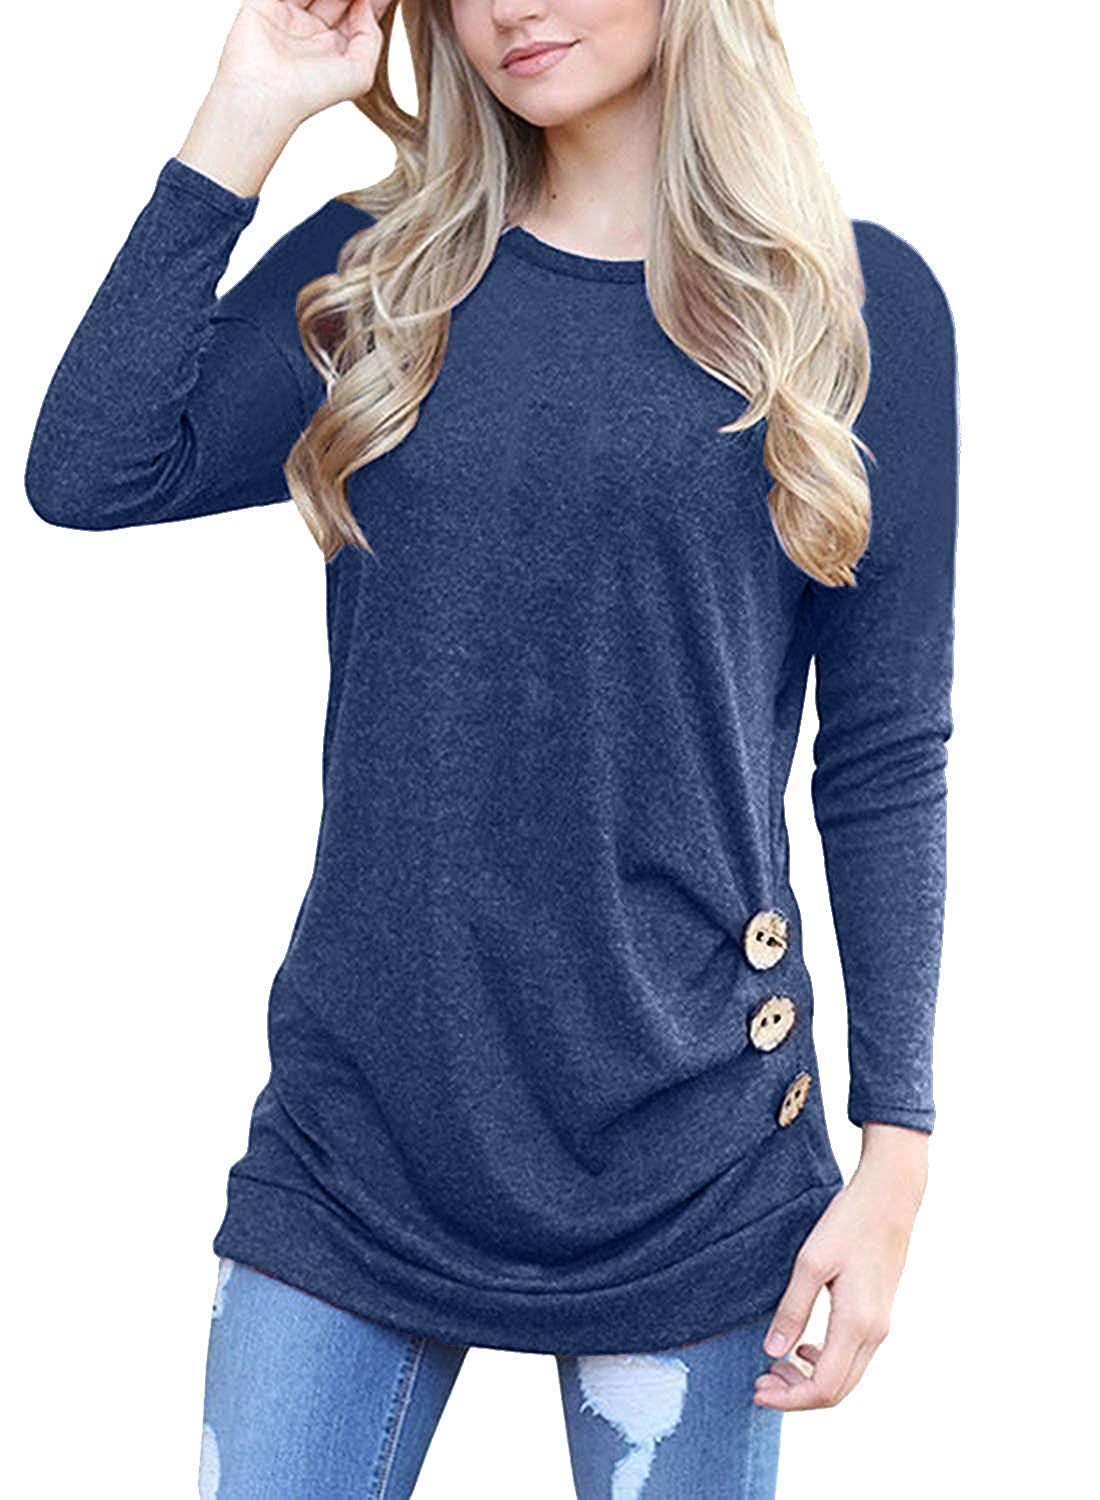 a851cab2f83 MOLERANI Women's Casual Long Sleeve Round Neck Loose Tunic T Shirt Blouse  Tops product image